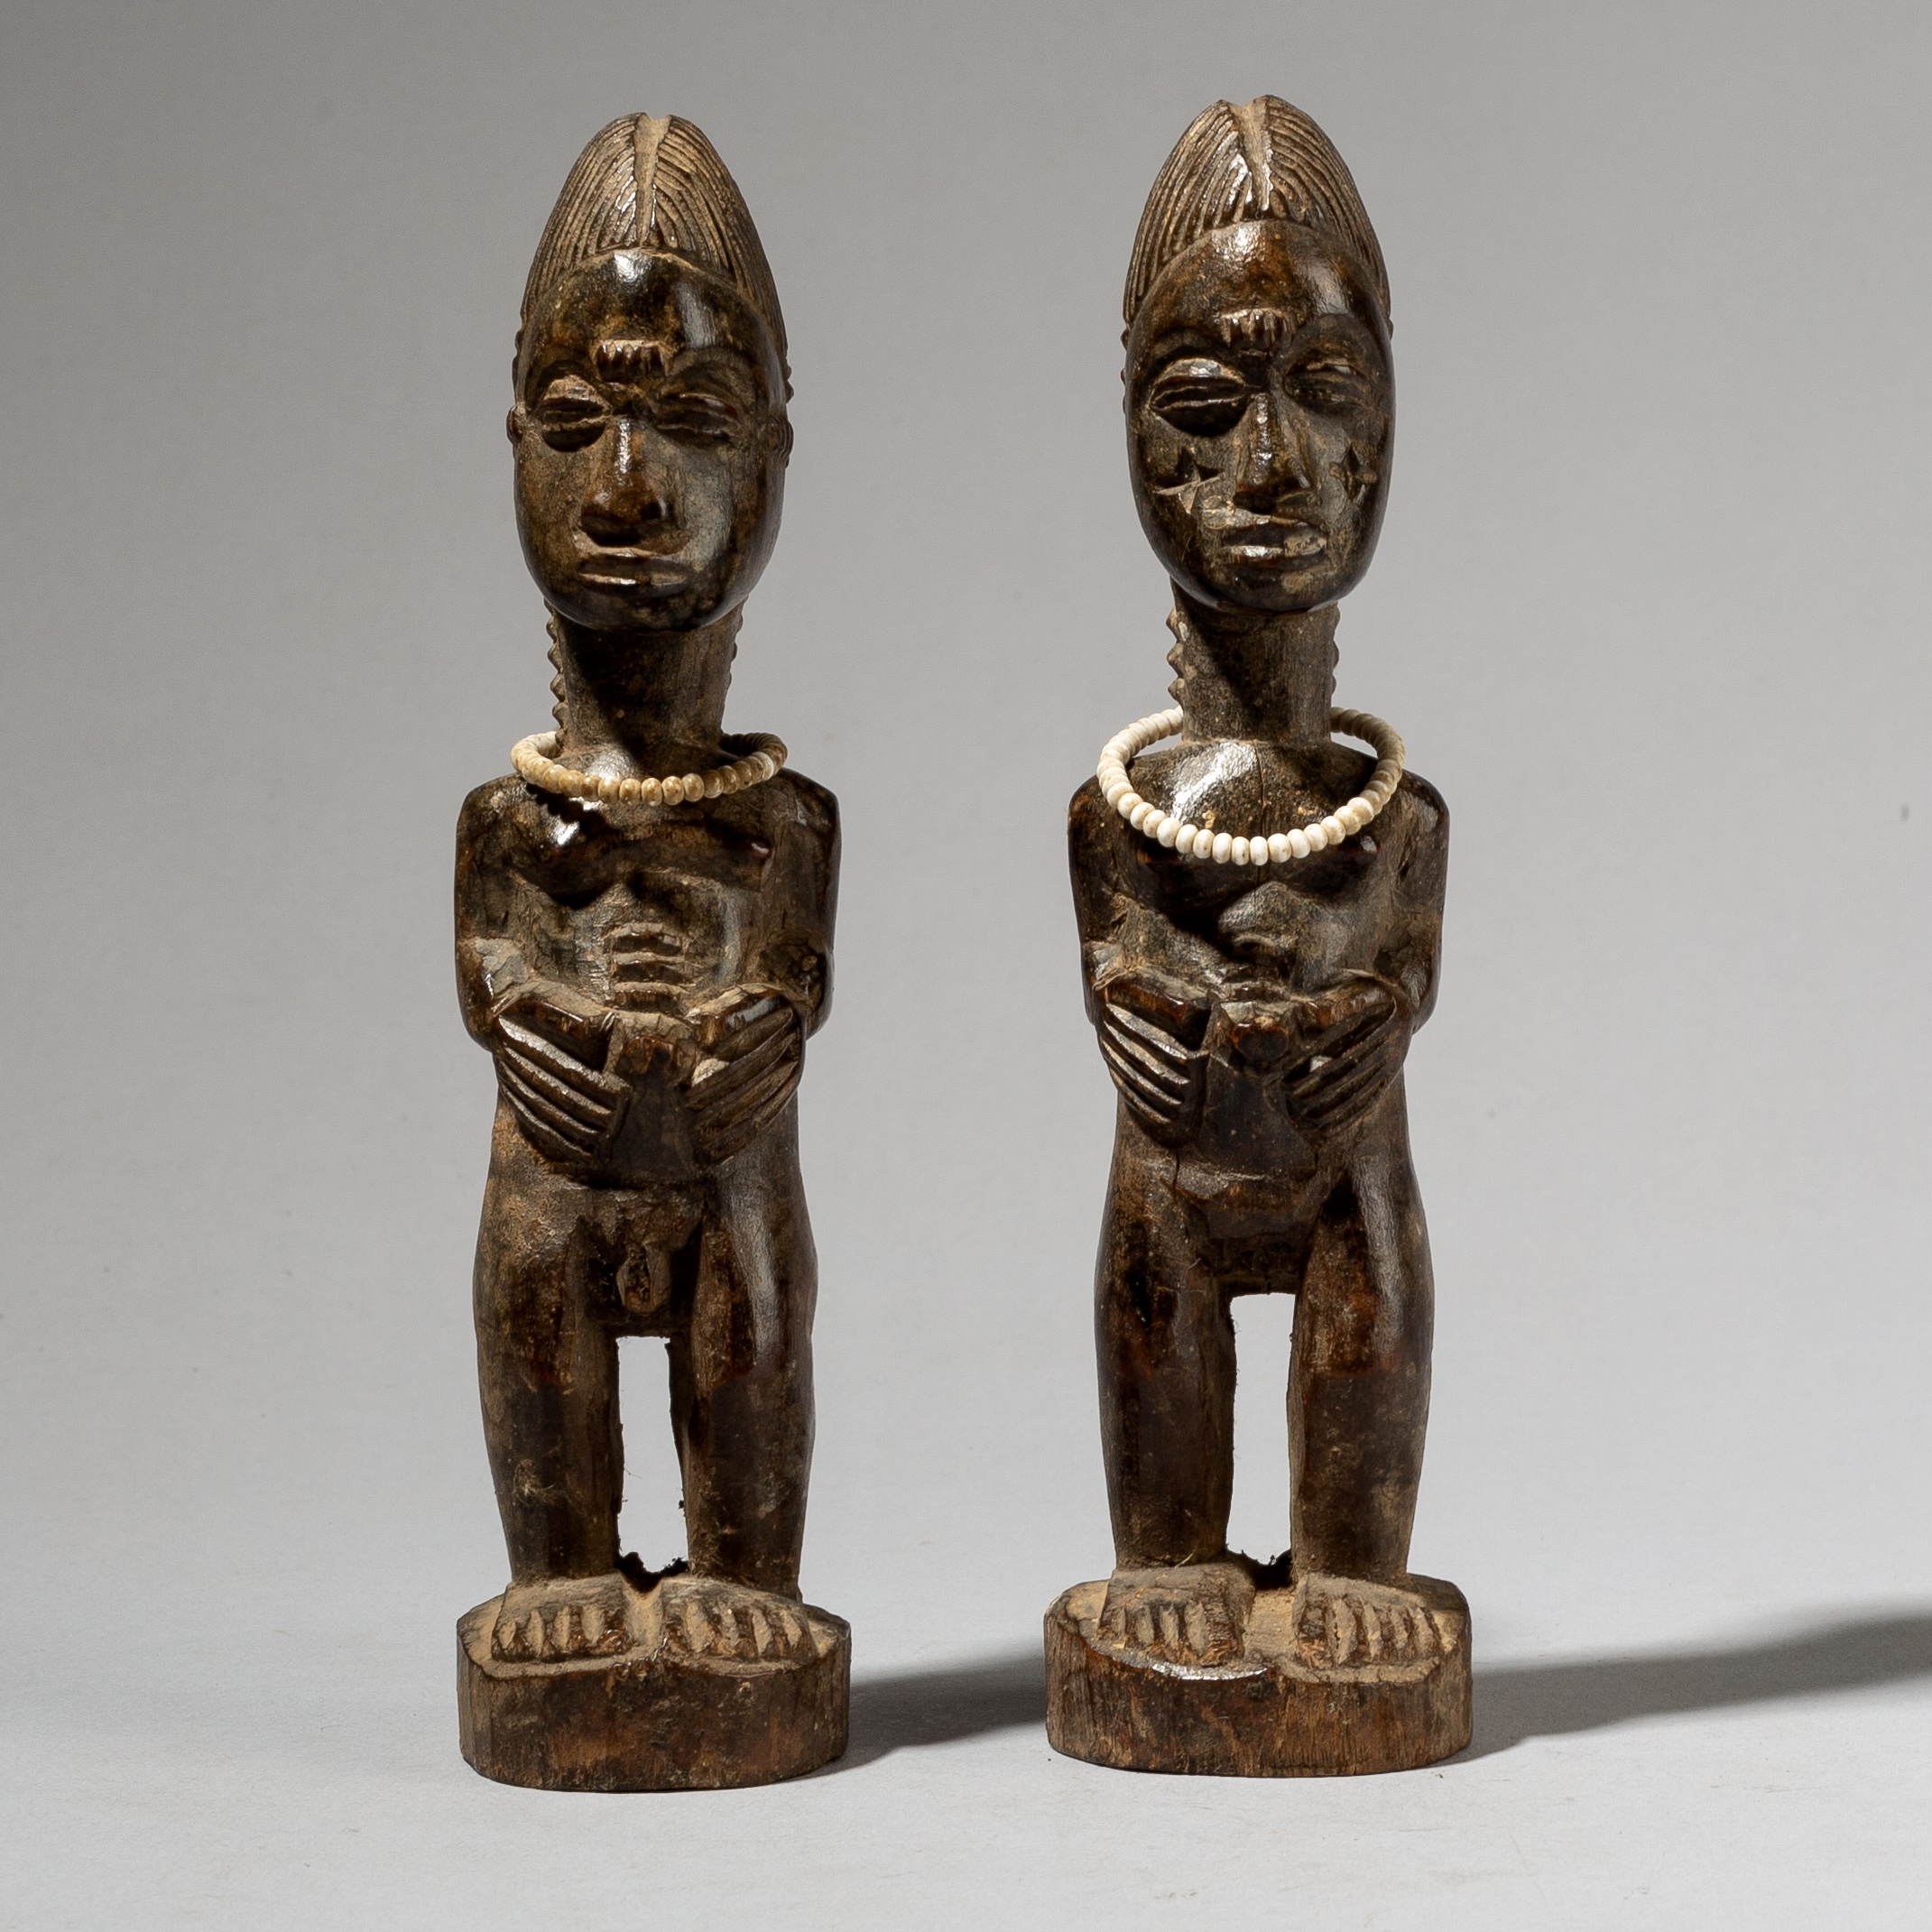 A GRACIOUS PAIR OF BAULE CHARM FIGURES, IVORY COAST W AFRICA ( No 4082)